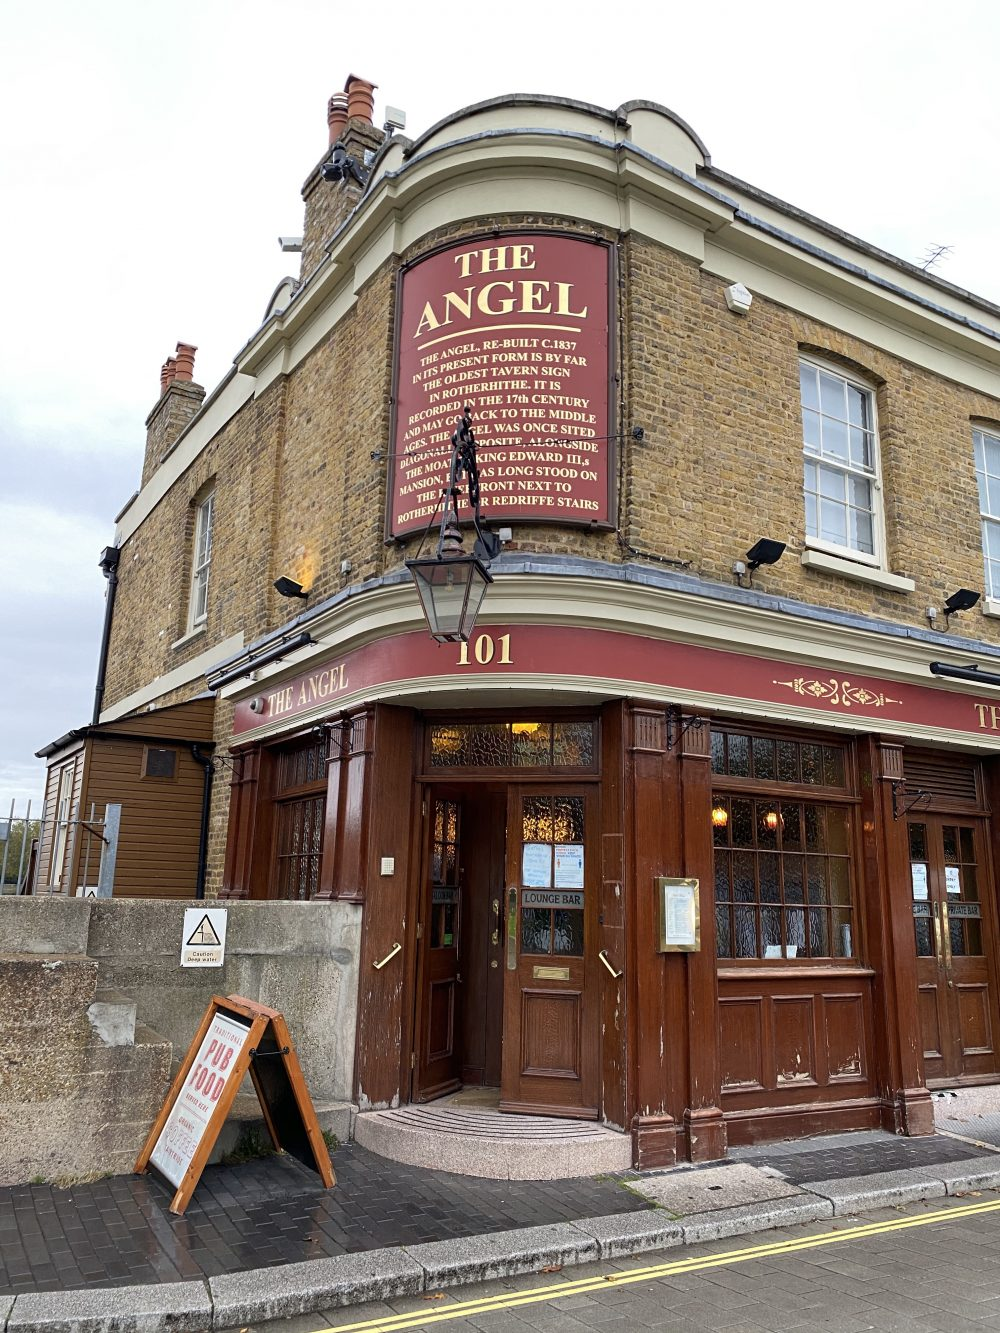 The Angel pub in Rotherhithe